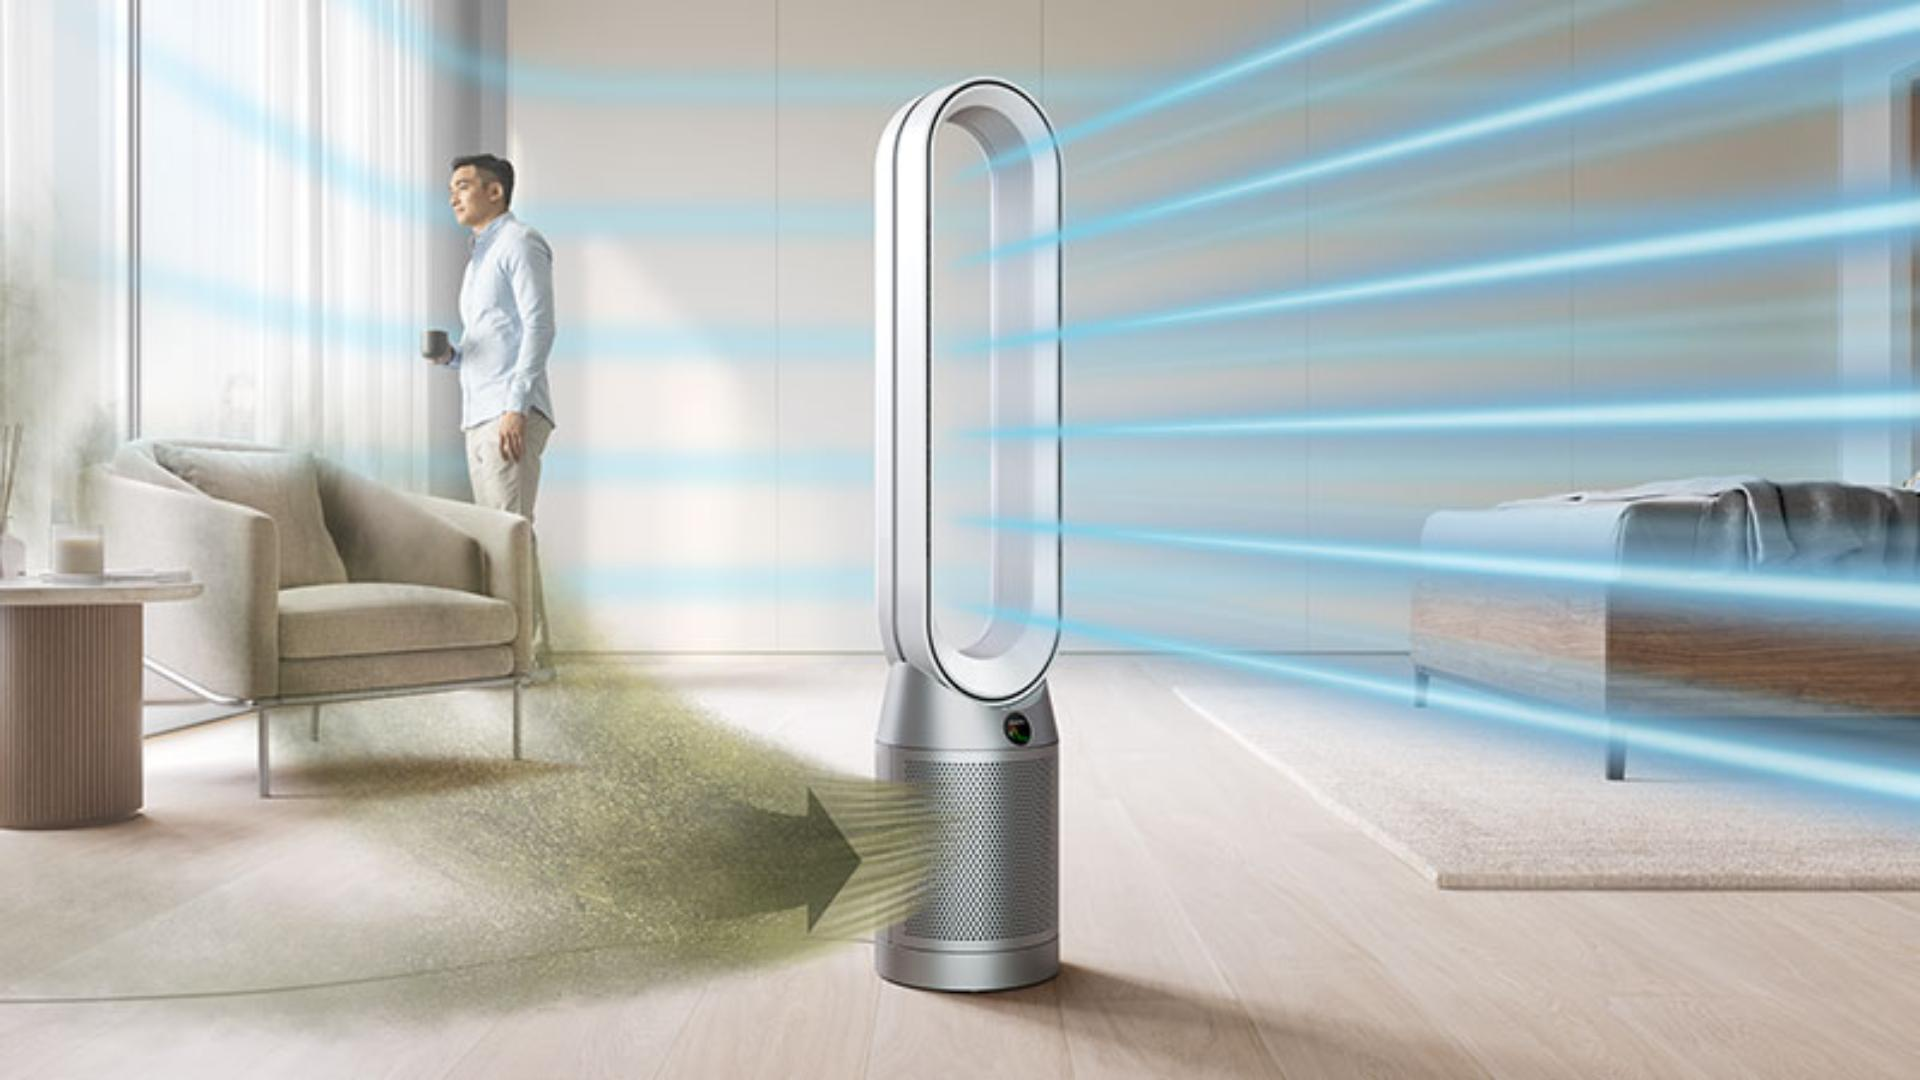 Dyson Purifier Cool projecting purified air